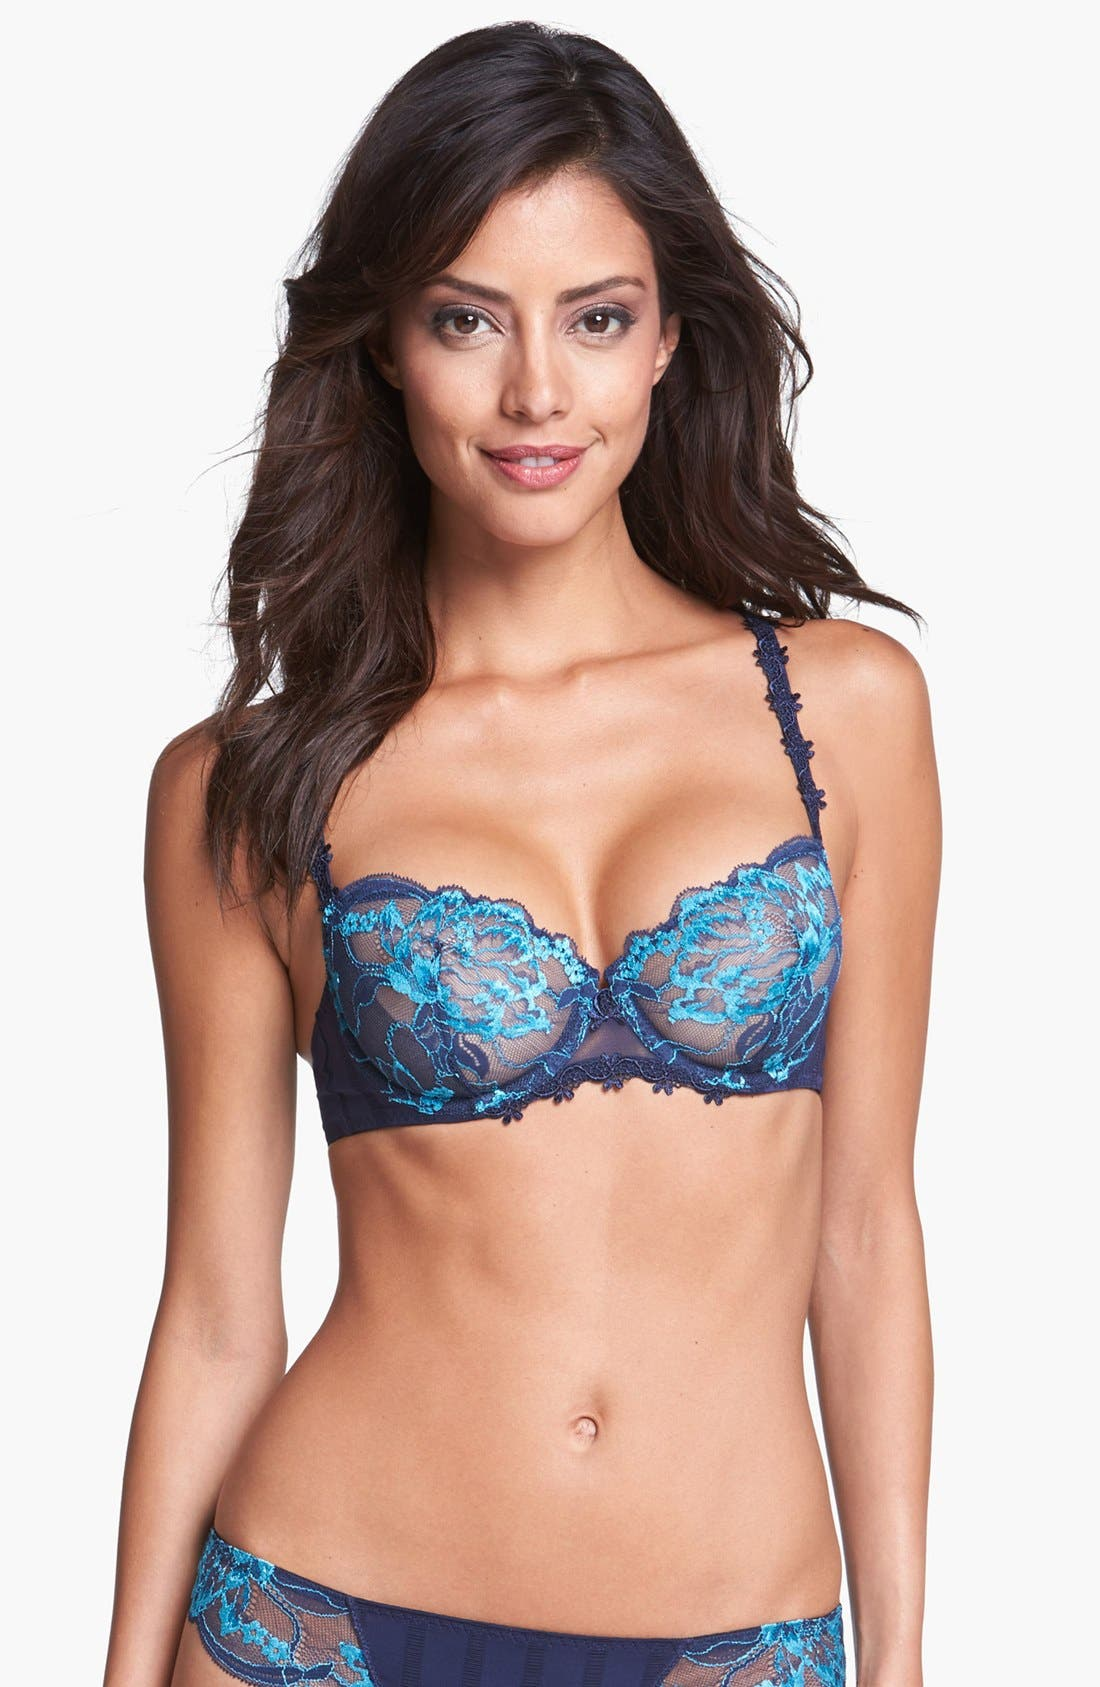 'Amour' Underwire Demi Bra,                             Main thumbnail 7, color,